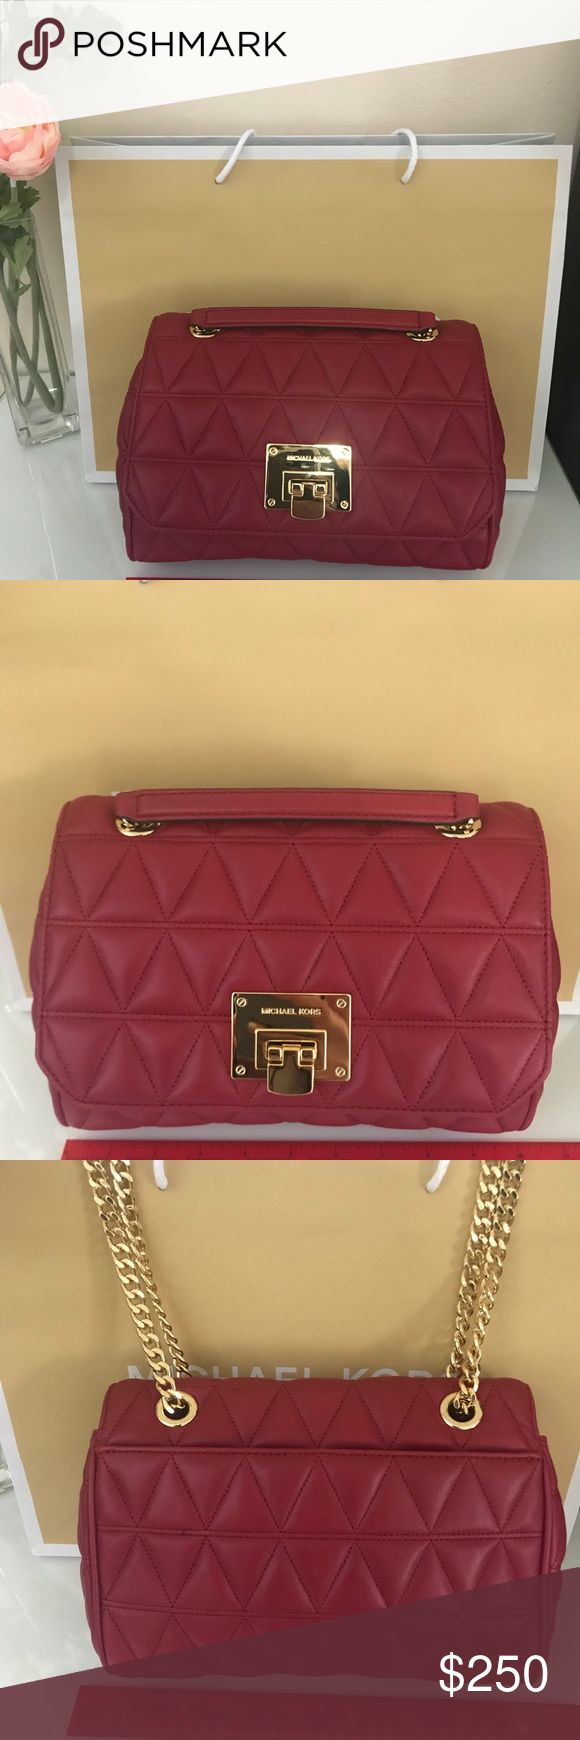 Michael Kors Quilted Vivianne Cherry red handbag New with tags! MSRP $378 Authentic Michael Kors Quilted Medium flap fold lock shoulder to crossbody convertible handbag. Features gold hardware. Single zippered pocket inside. So perfect for all your holiday parties - stylish and luxurious! Michael Kors Bags Crossbody Bags